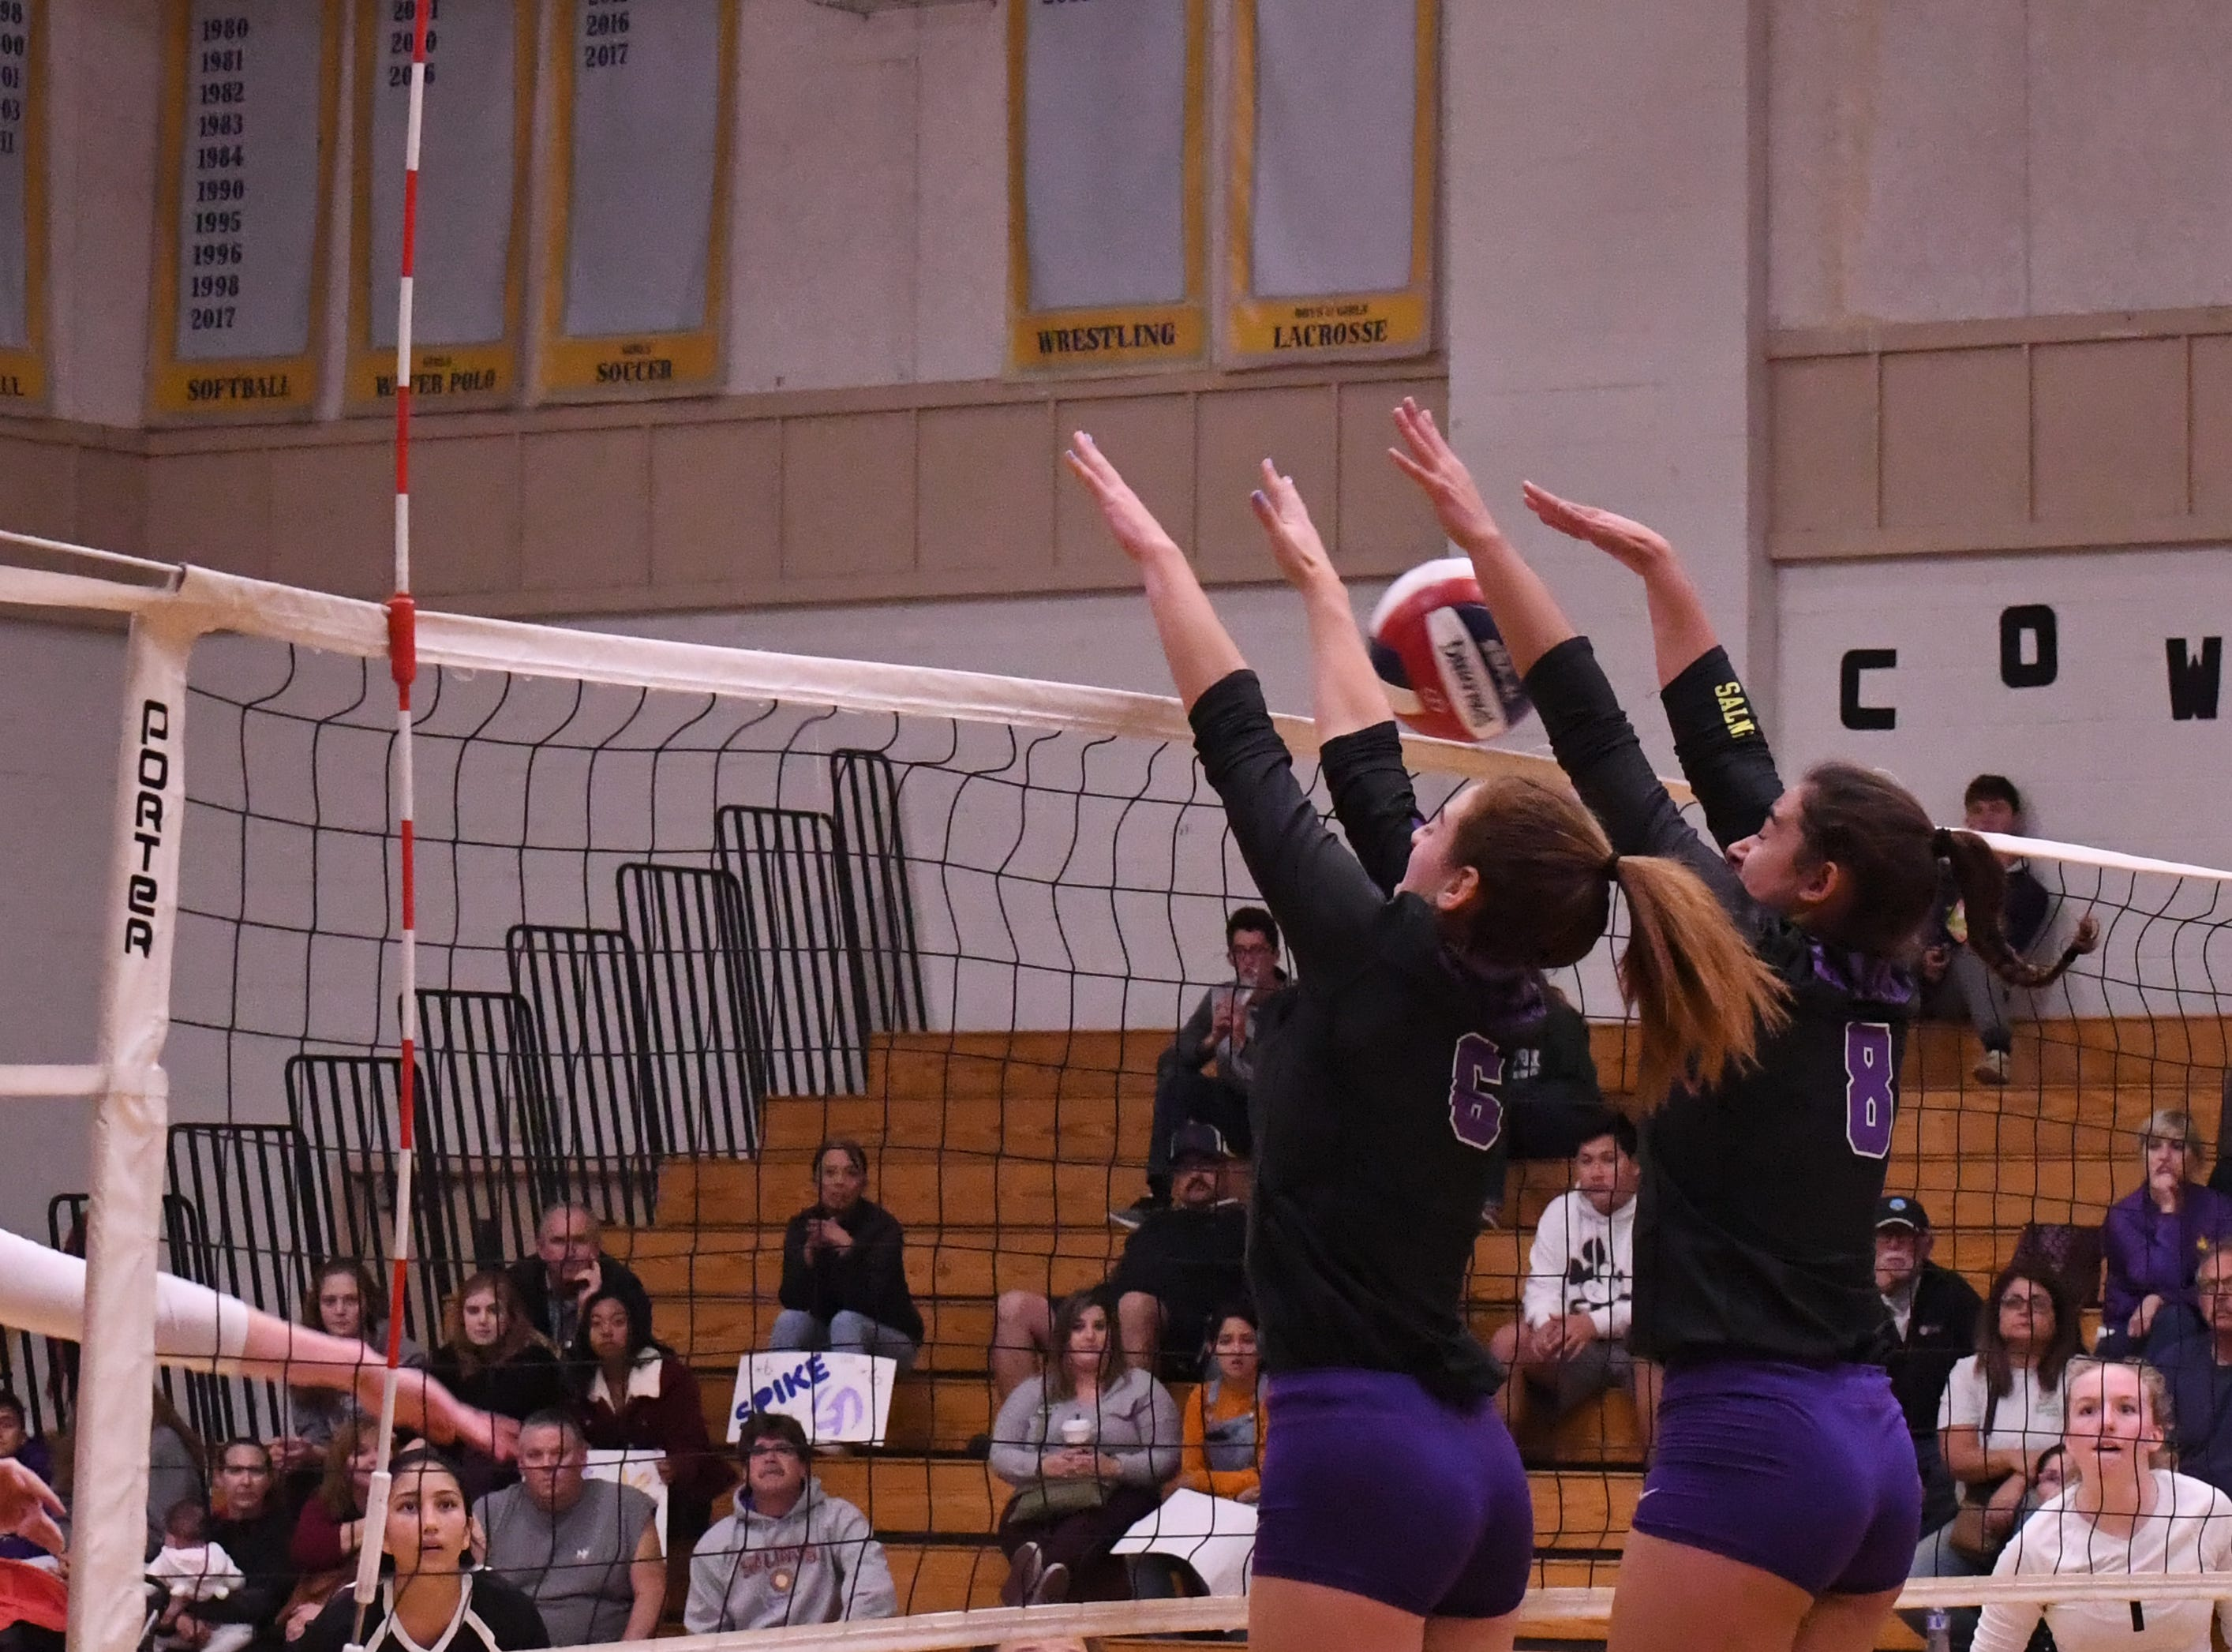 Outside hitter Kylee Moore (6) and middle blocker Christina Chagnon (8) block a spike by a Los Gatos player.